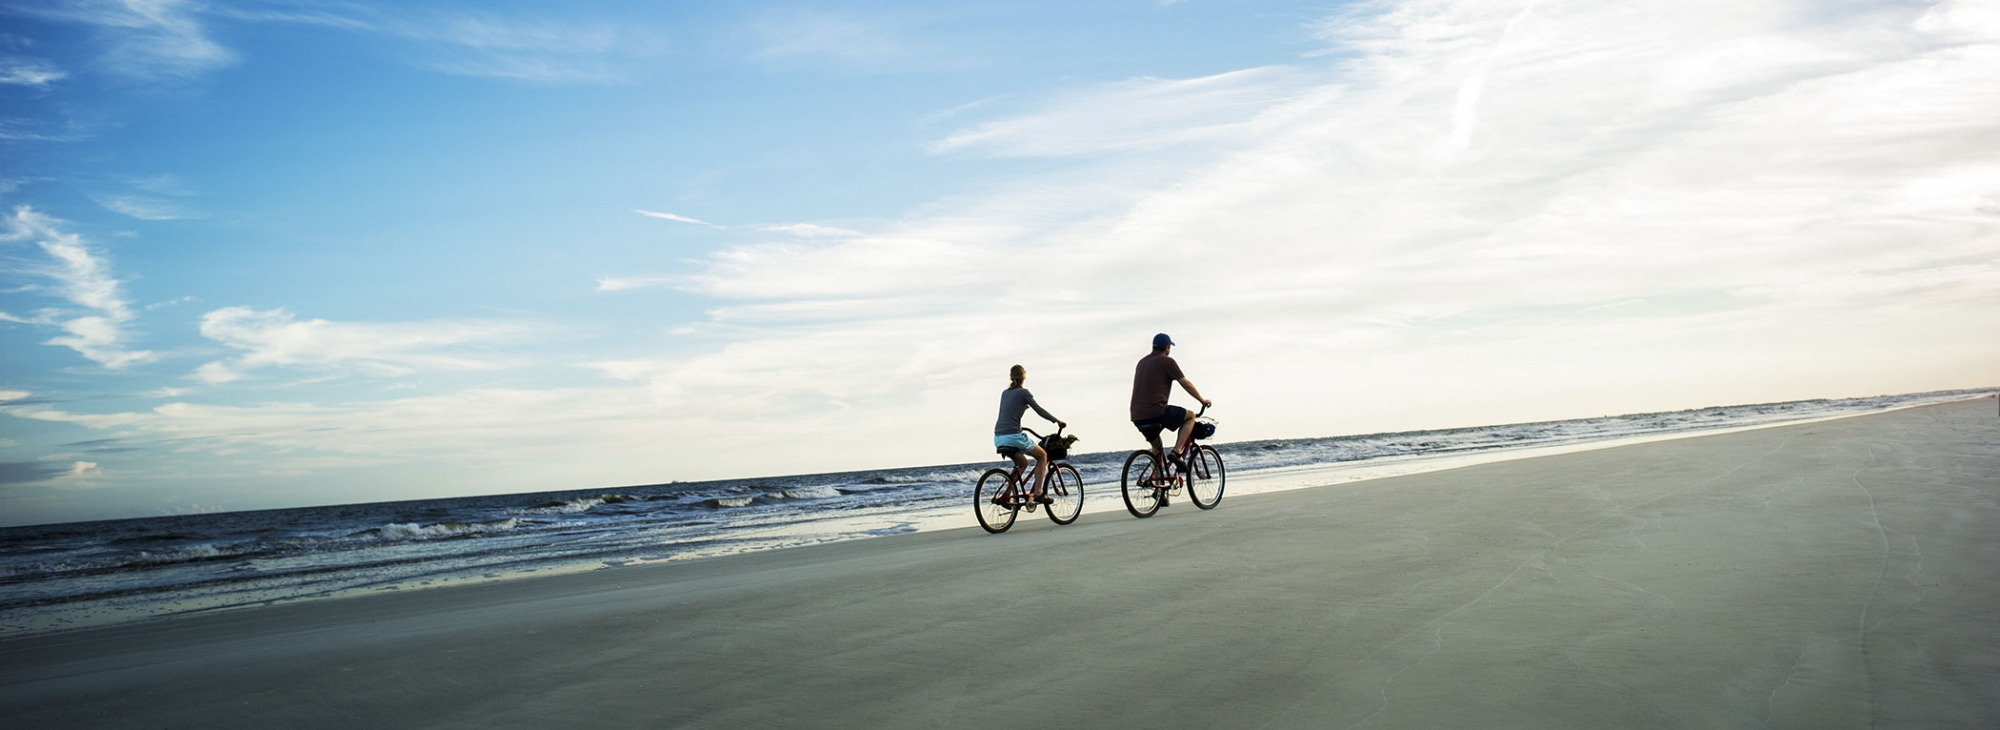 frequently-asked-questions-about-biking-on-hilton-head-island1-2000x730.jpg